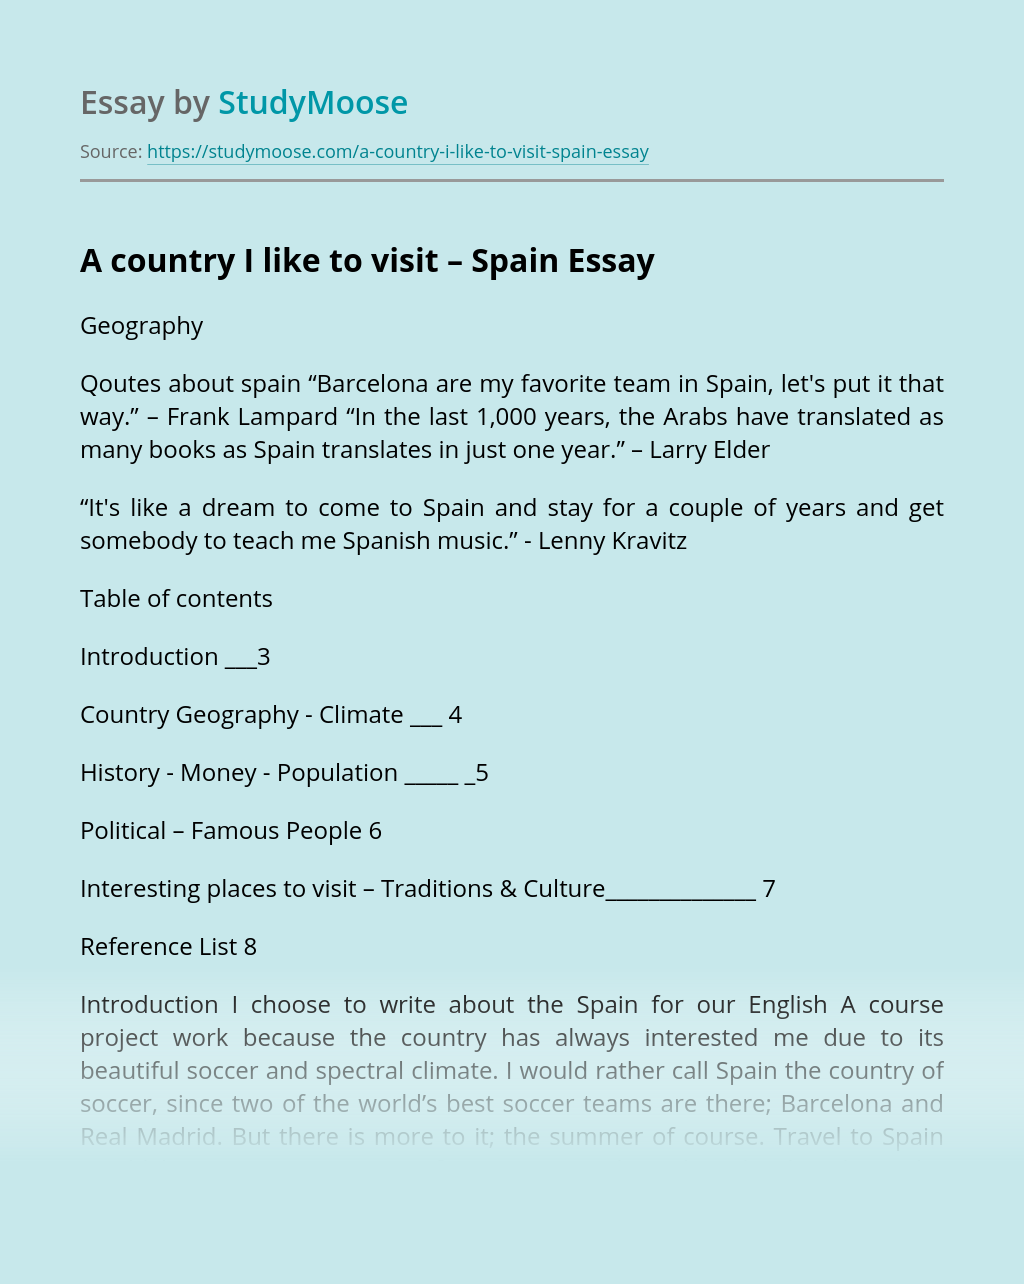 A country I like to visit – Spain